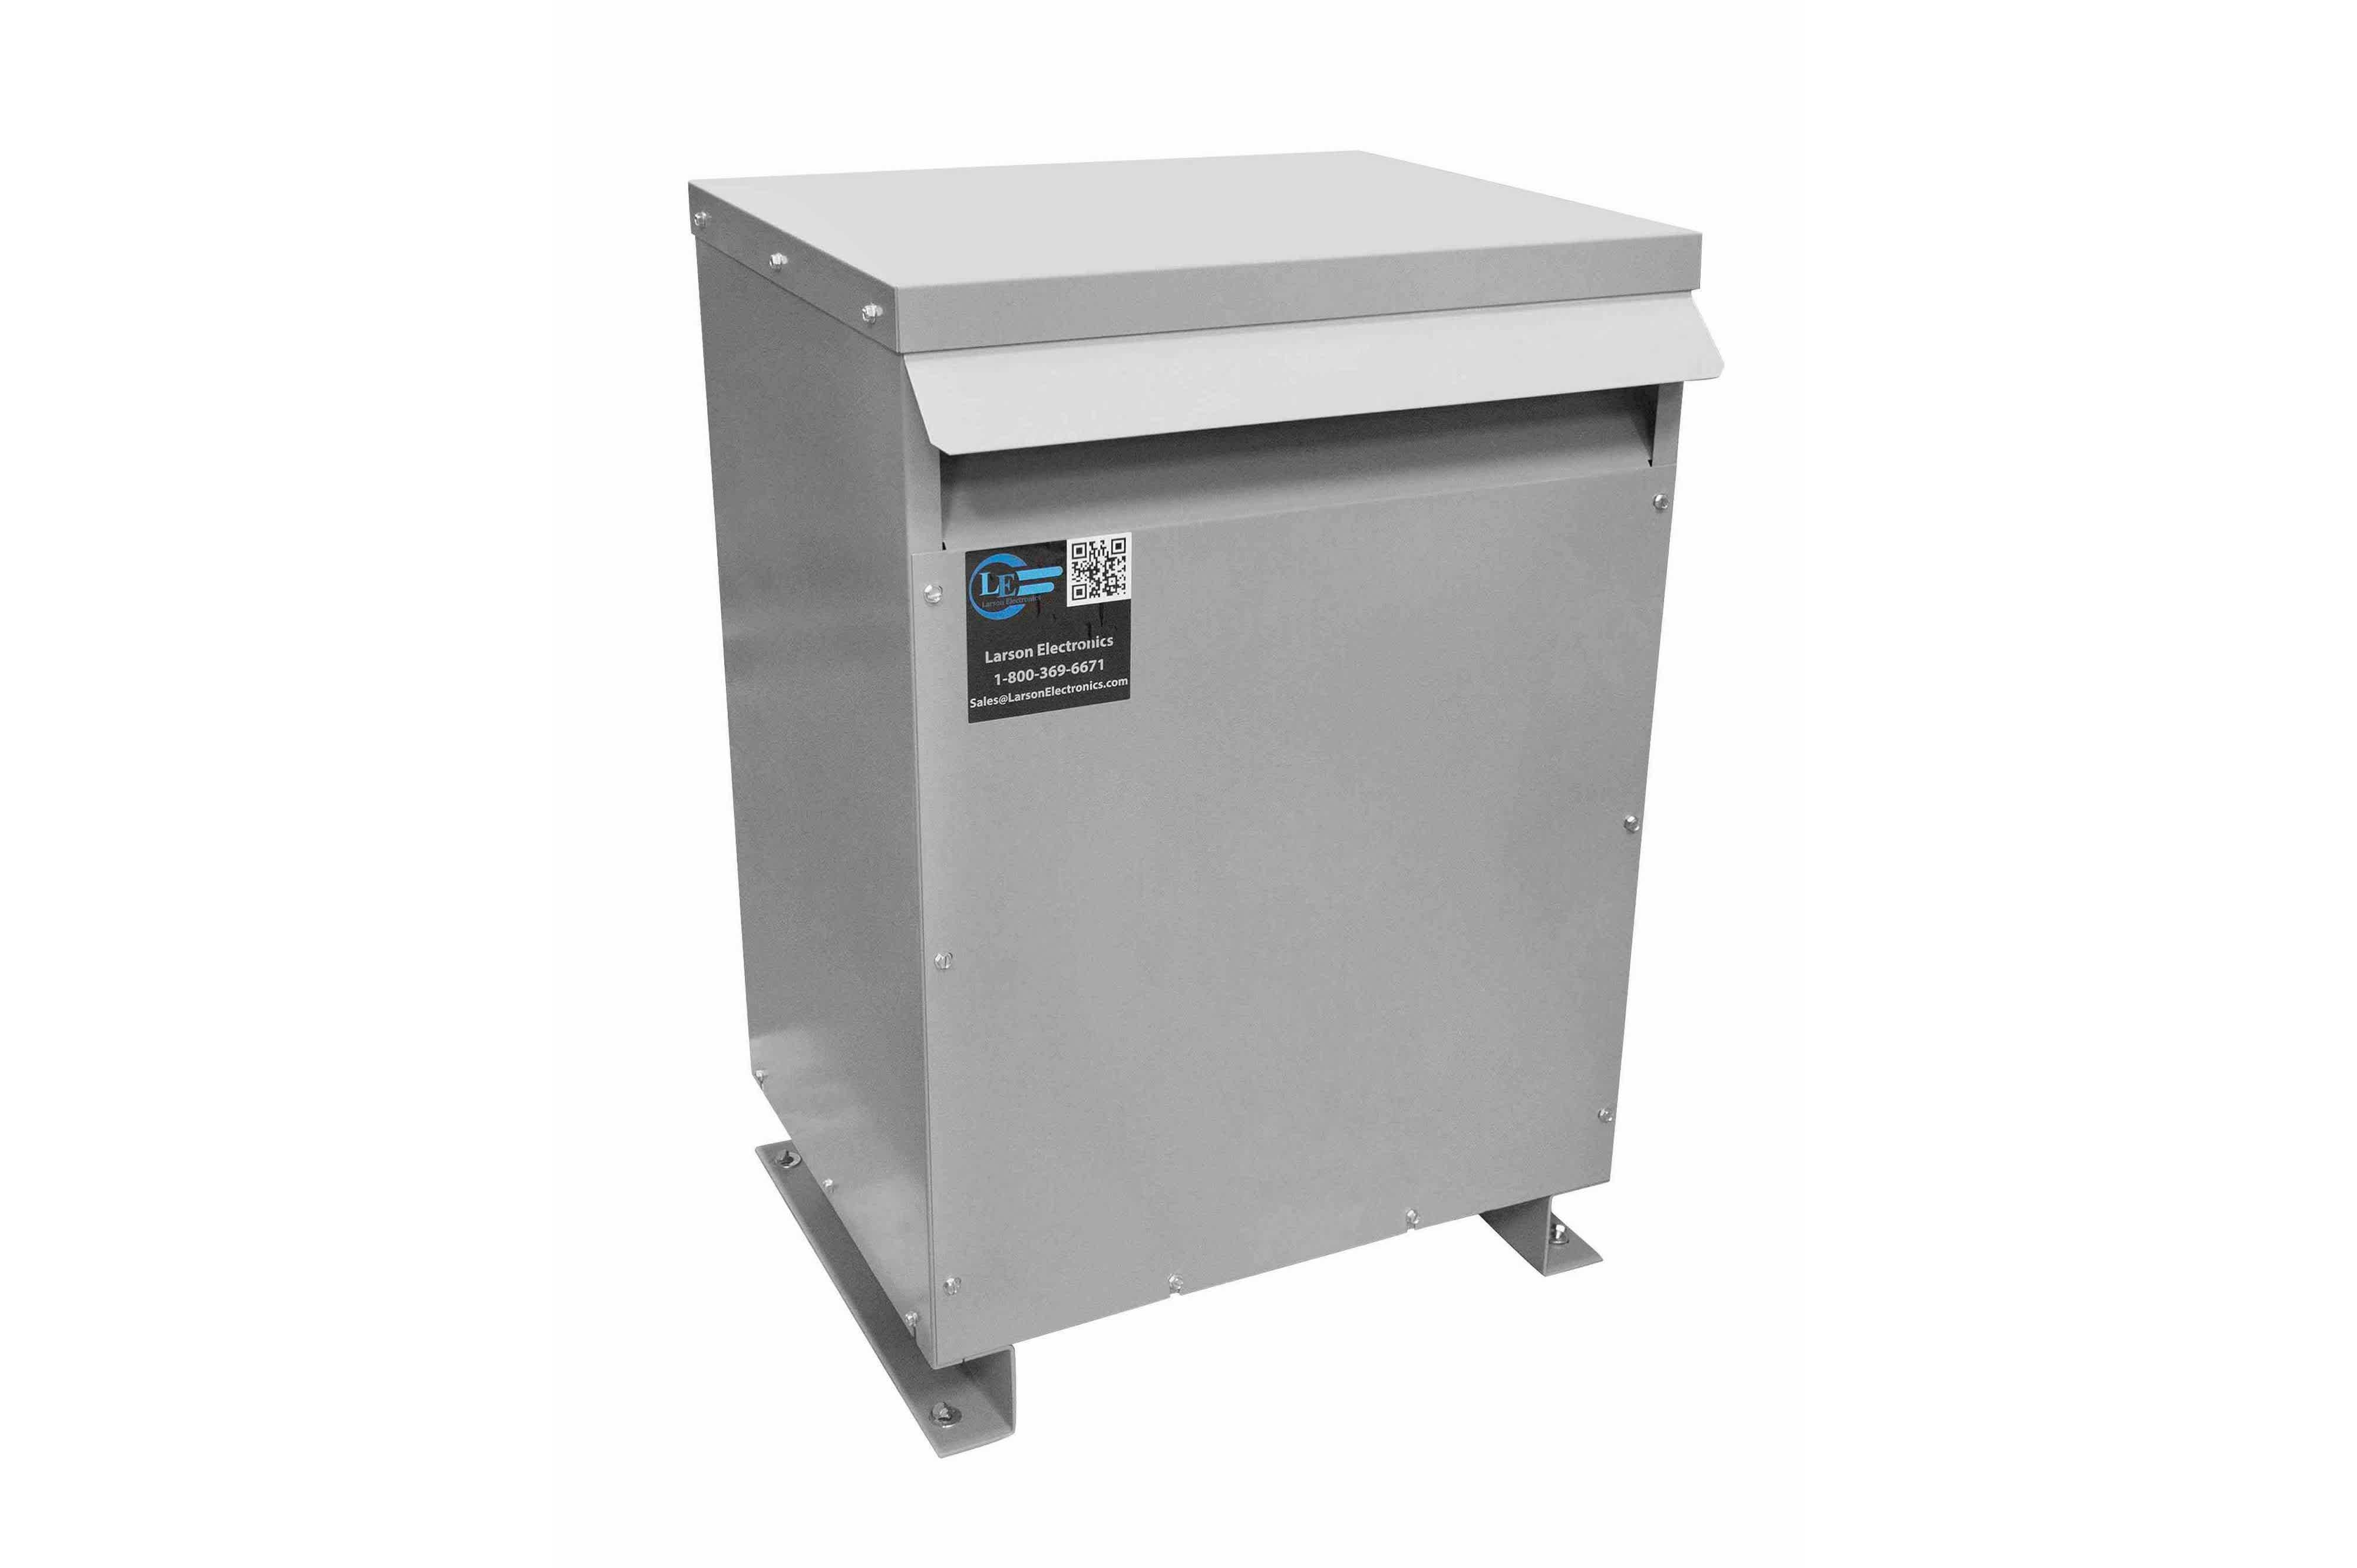 29 kVA 3PH Isolation Transformer, 600V Wye Primary, 208Y/120 Wye-N Secondary, N3R, Ventilated, 60 Hz